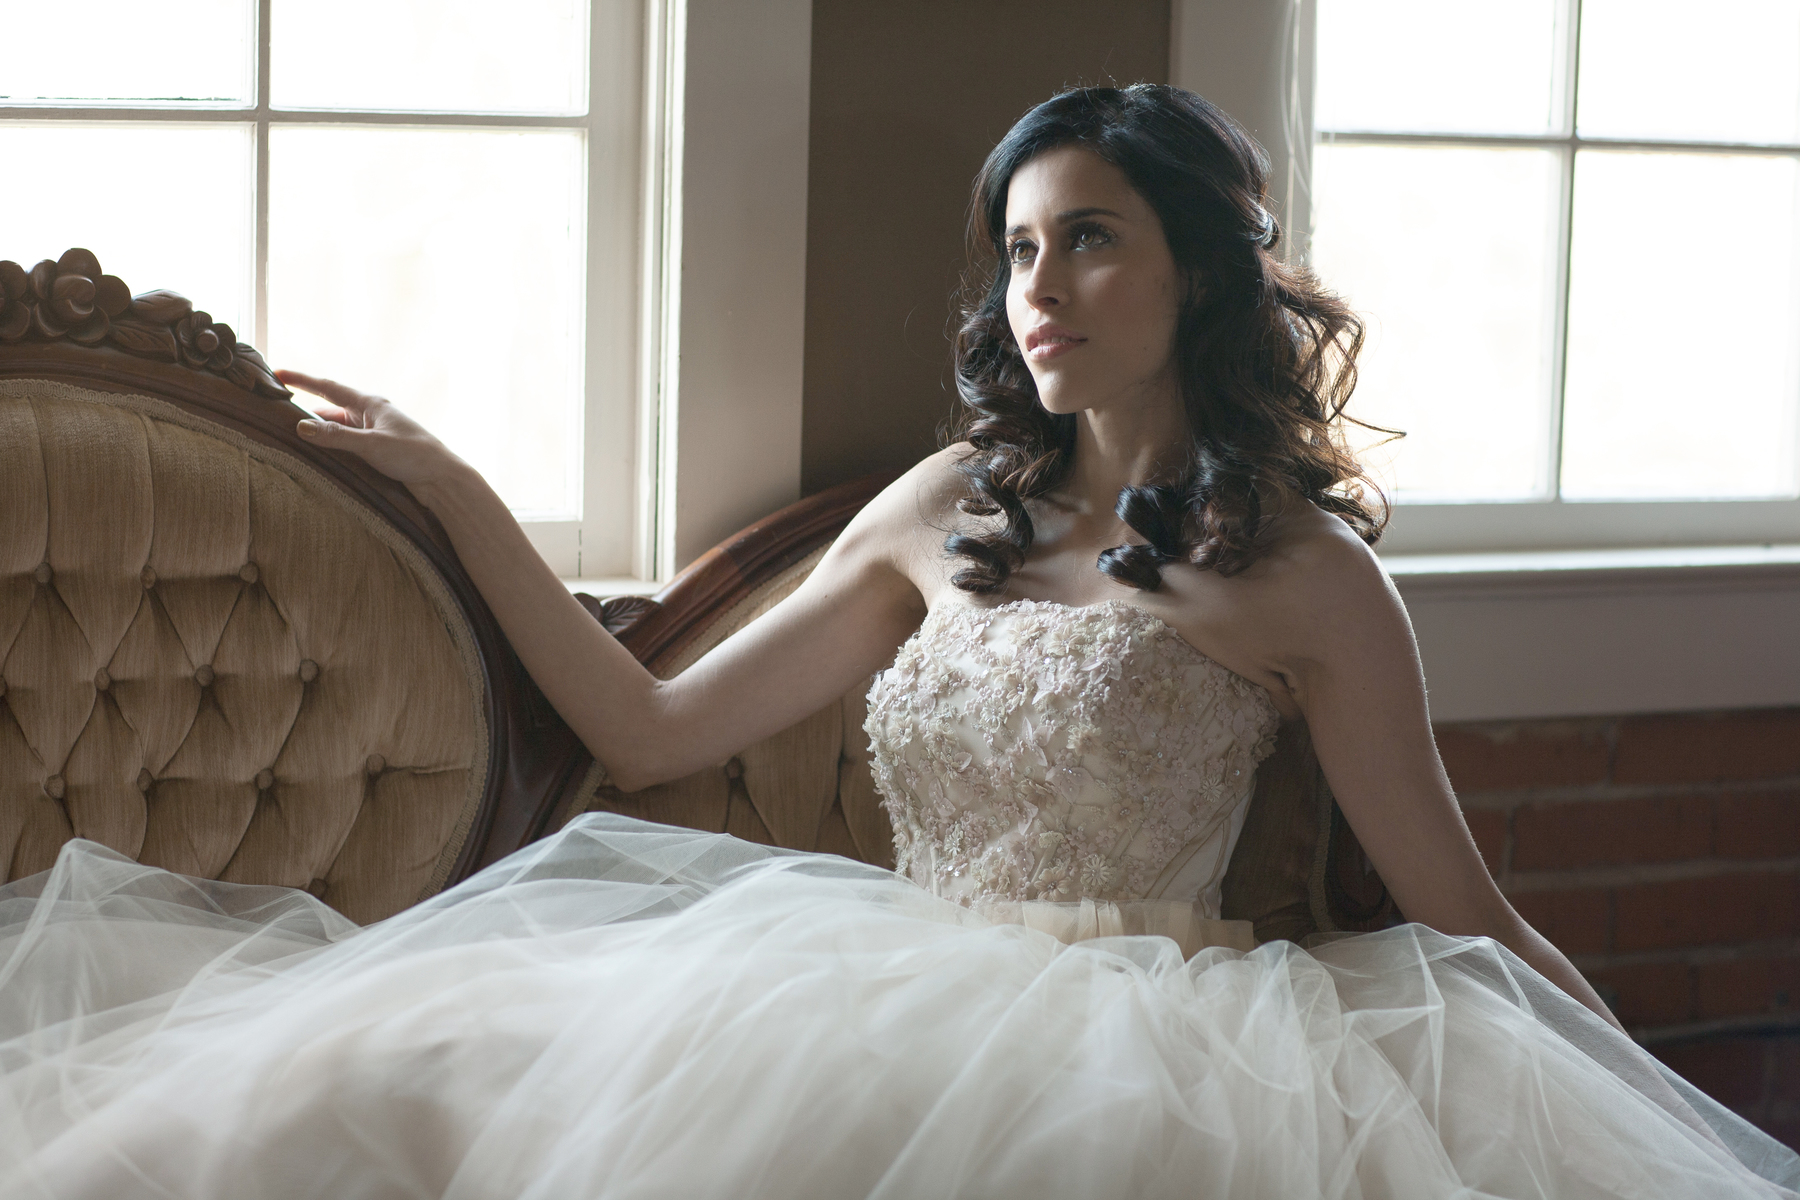 Simply by Tamara Nicole -Wedding Planner <br />Designer: Luly Yang <br />Make up/Hair: Yessie Libby <br />Photography: Aly Medina - La Luz Photography